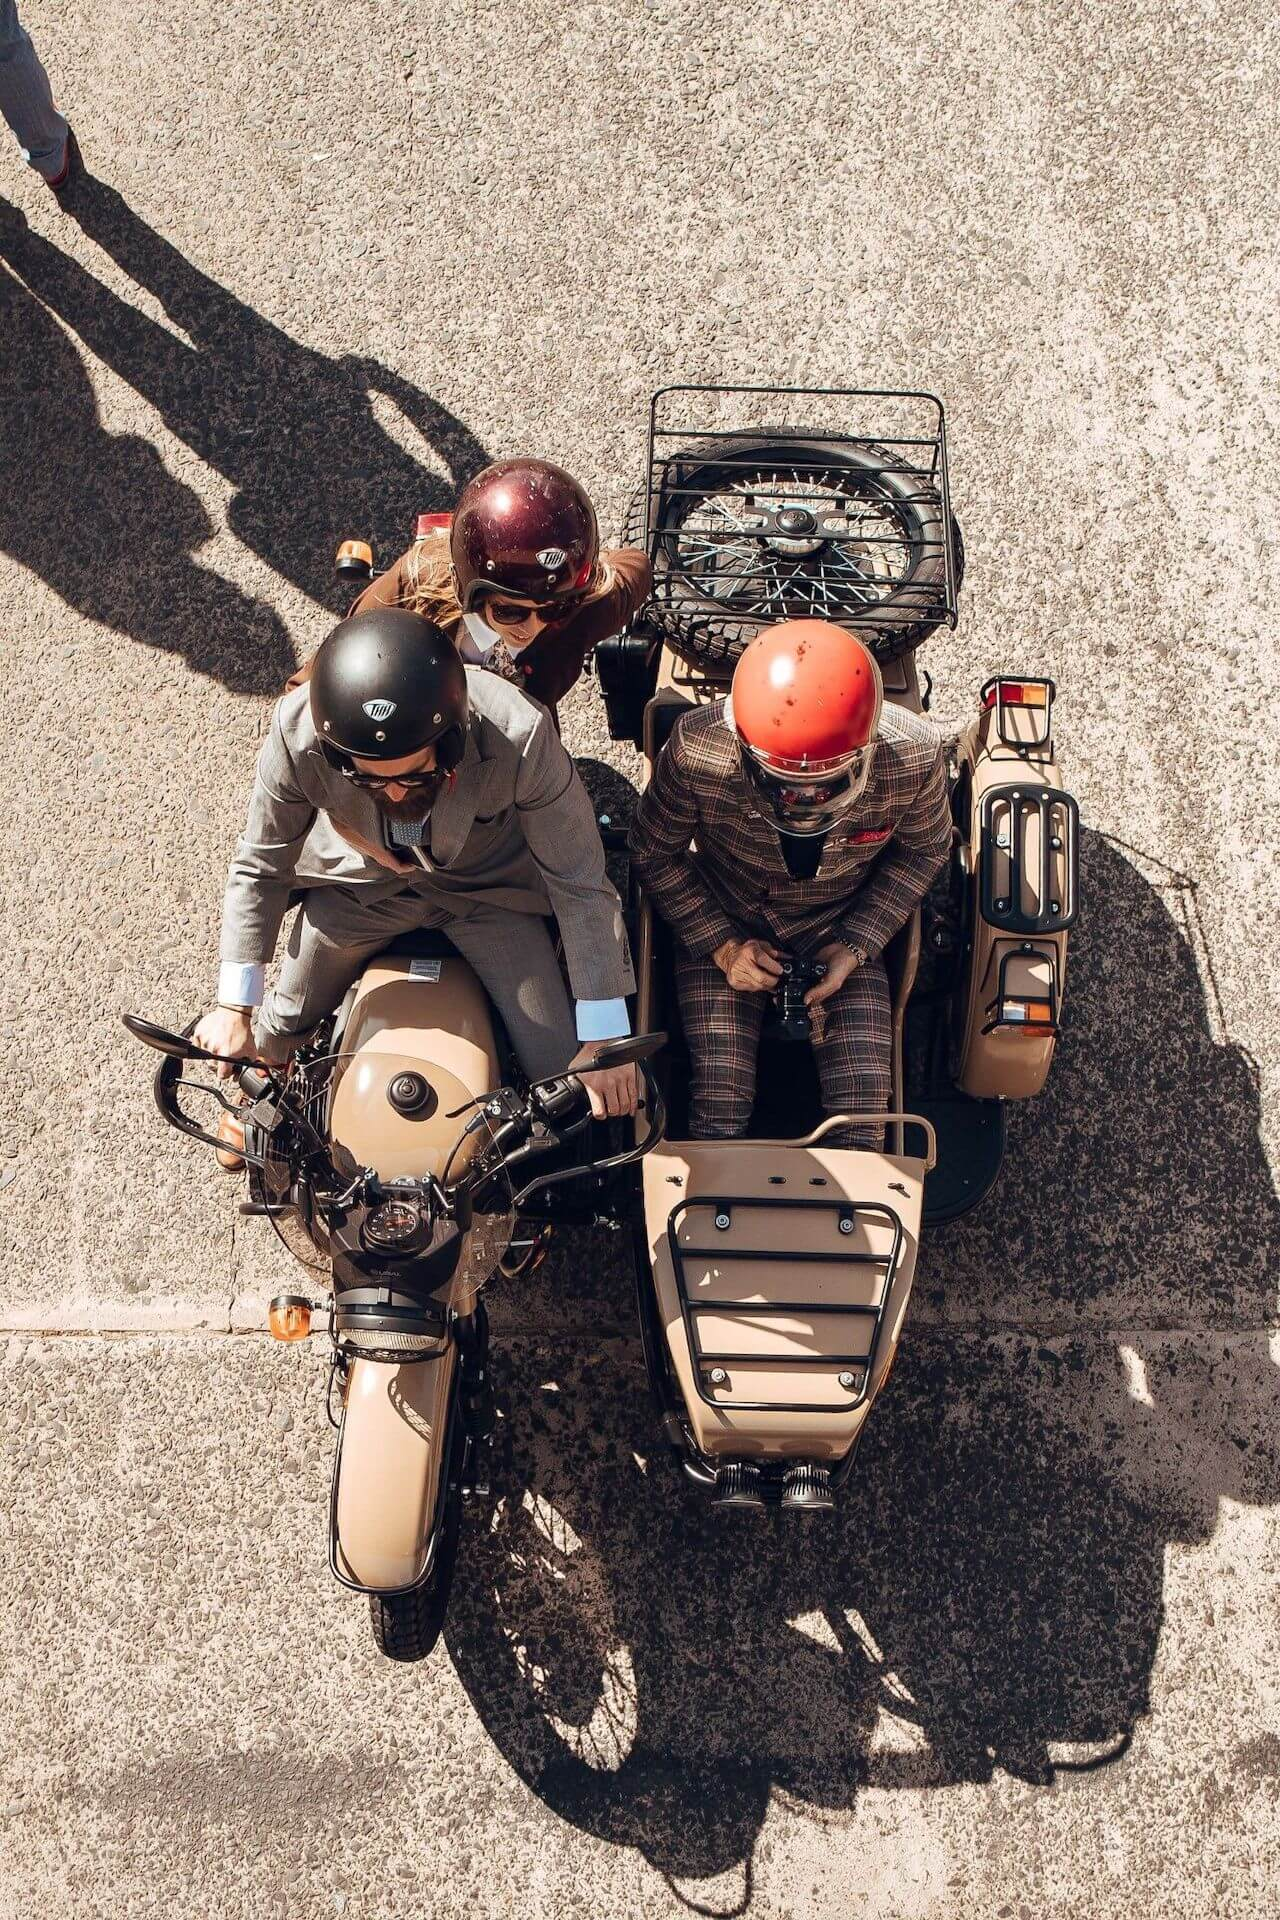 Three dressed in suits riding a vintage style motorbike with a sidecar